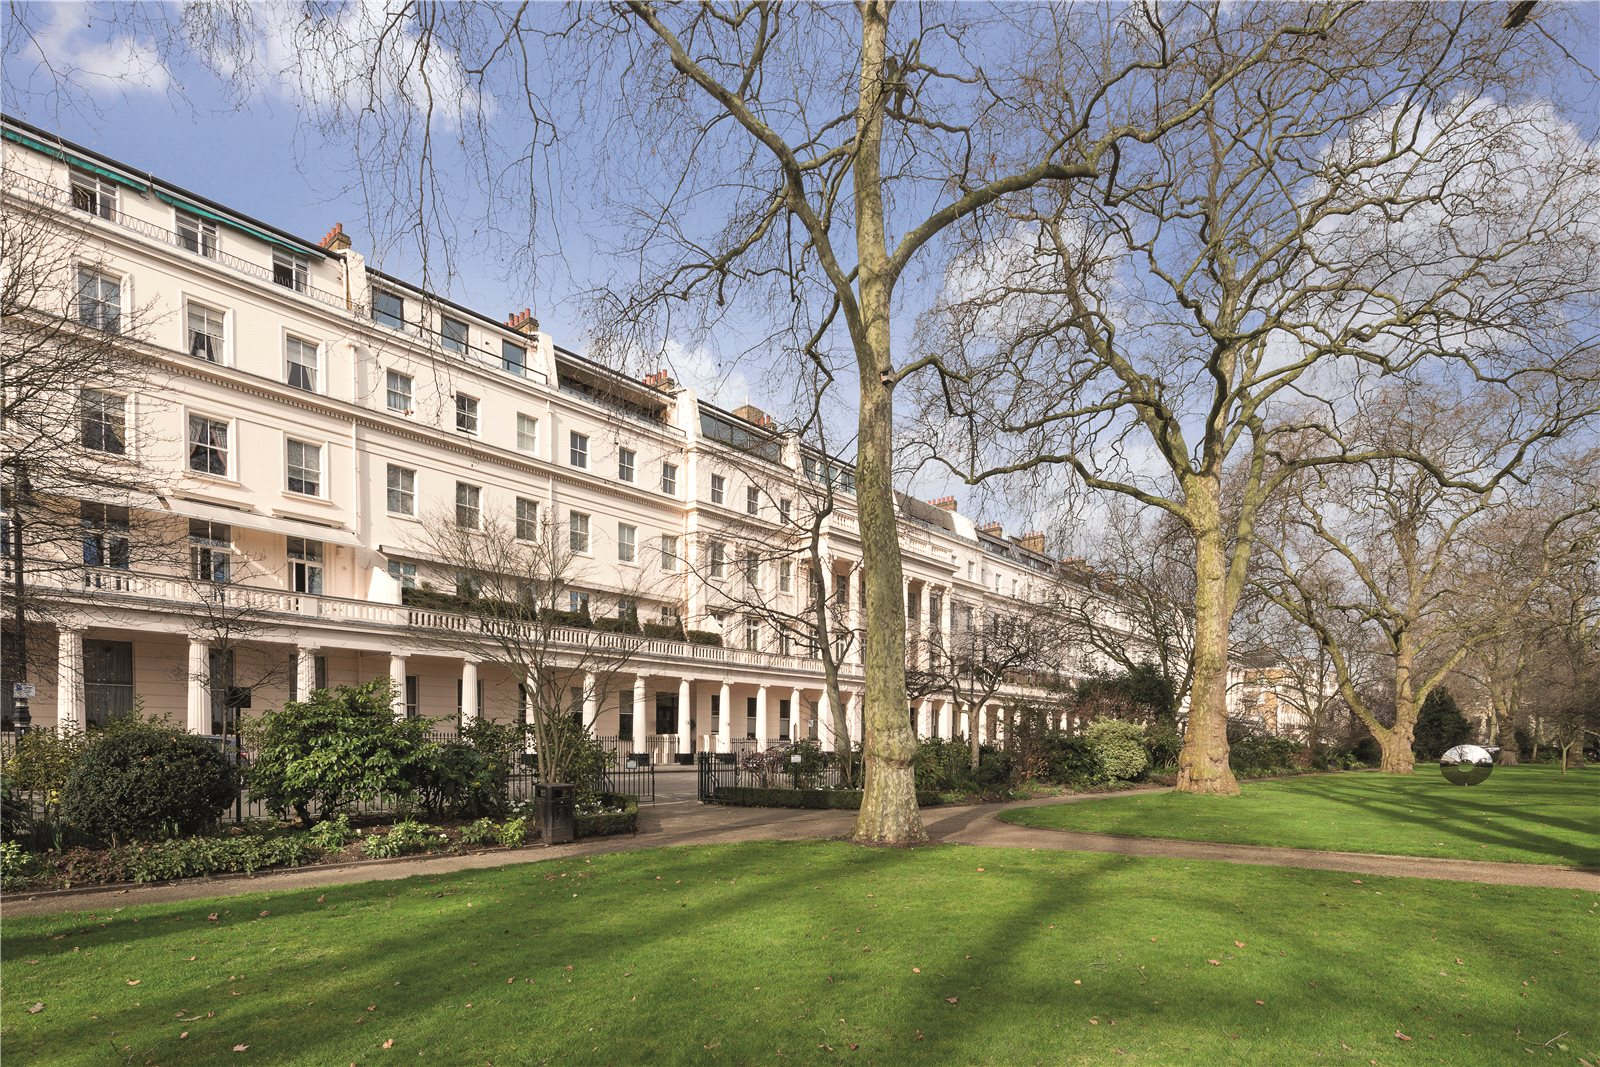 Apartments residences for sale at cork street mayfair london w1s - Greater London City Of London Luxury Real Estate For Sale Christie S International Real Estate